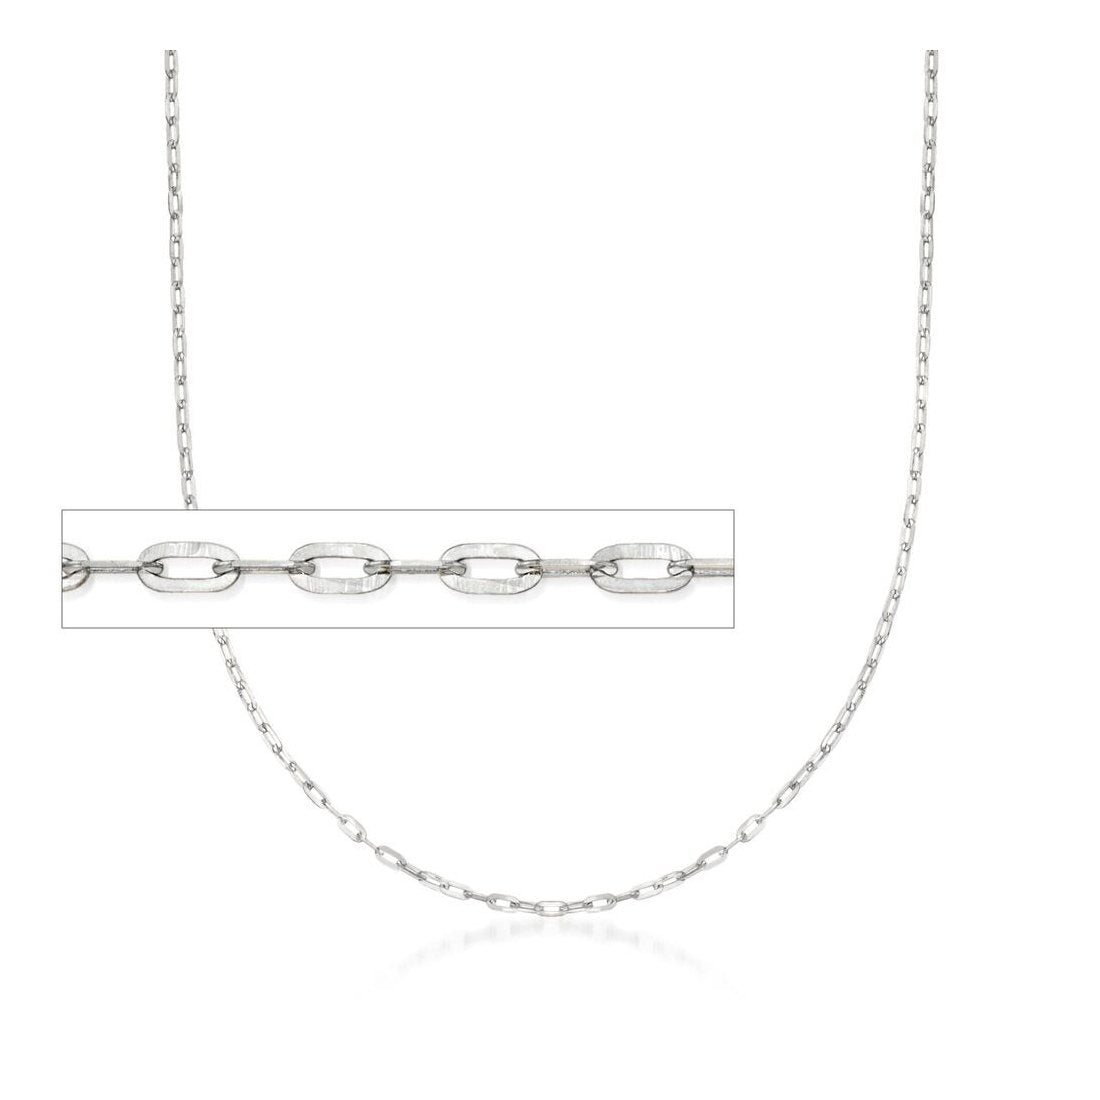 "6MM 160 Square Forzatina Chain .925 Solid Sterling Silver Sizes 8""-28"" Inches"